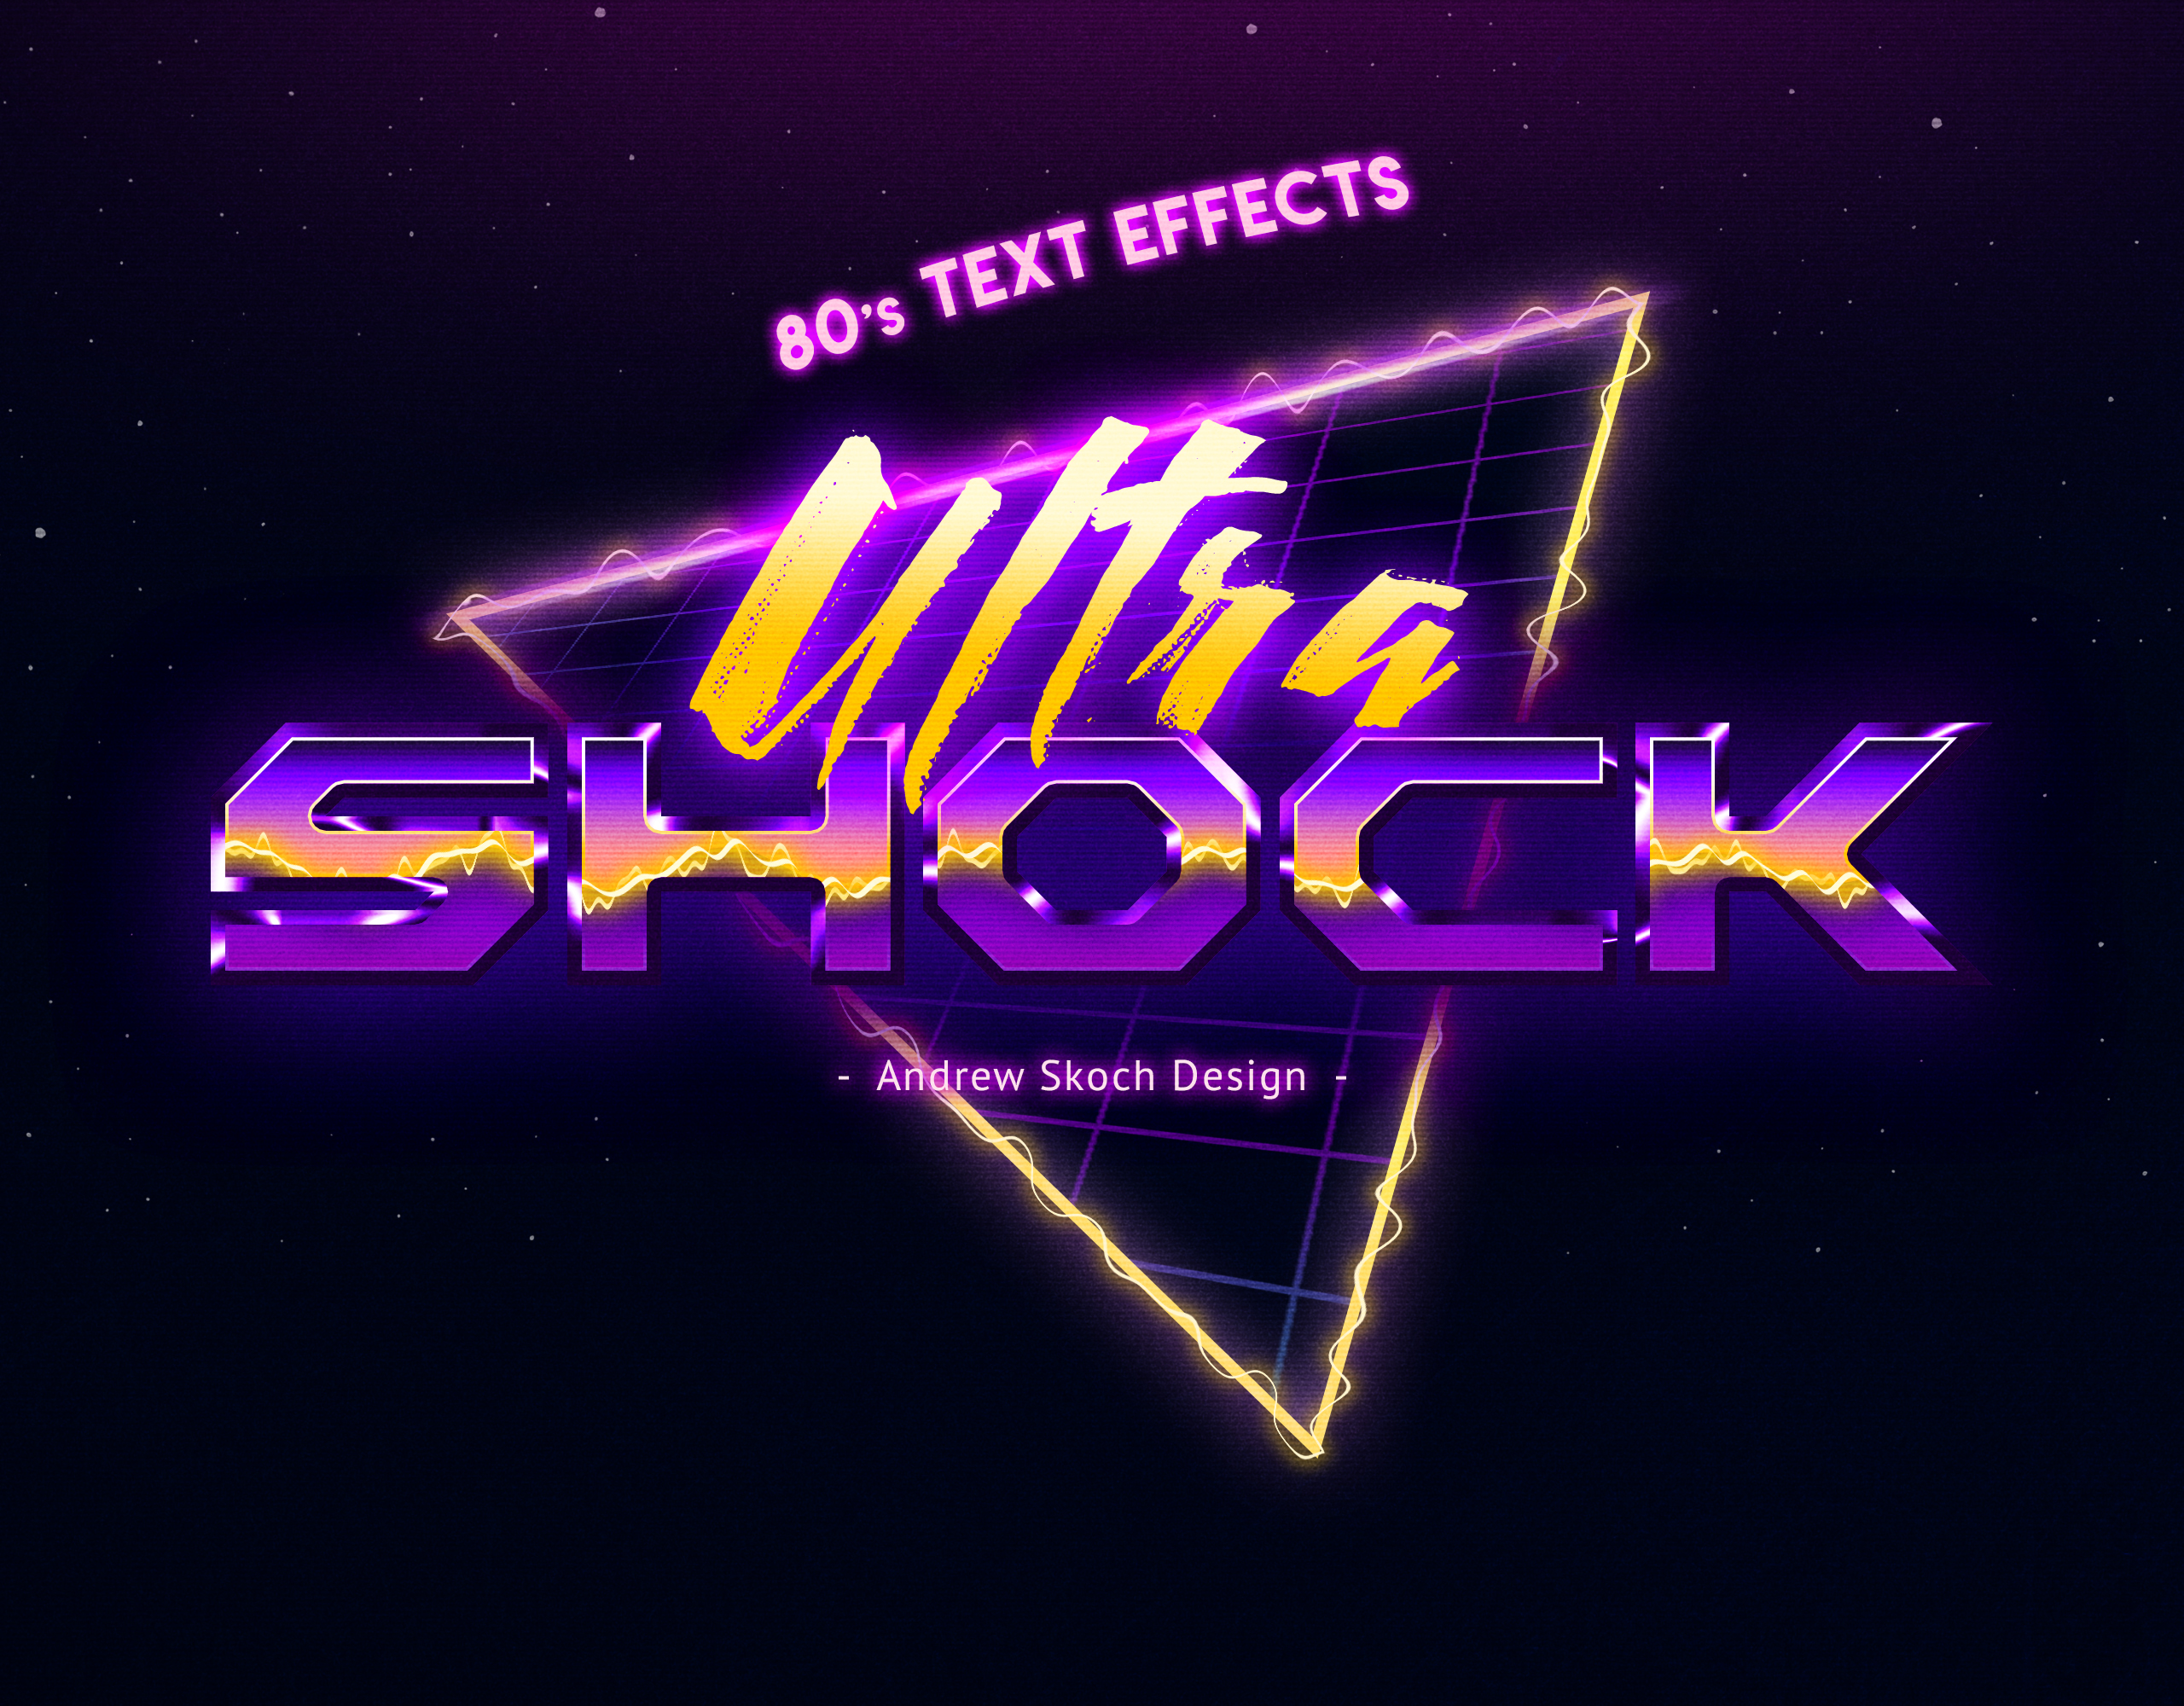 80s Retro Text Effects vol 2